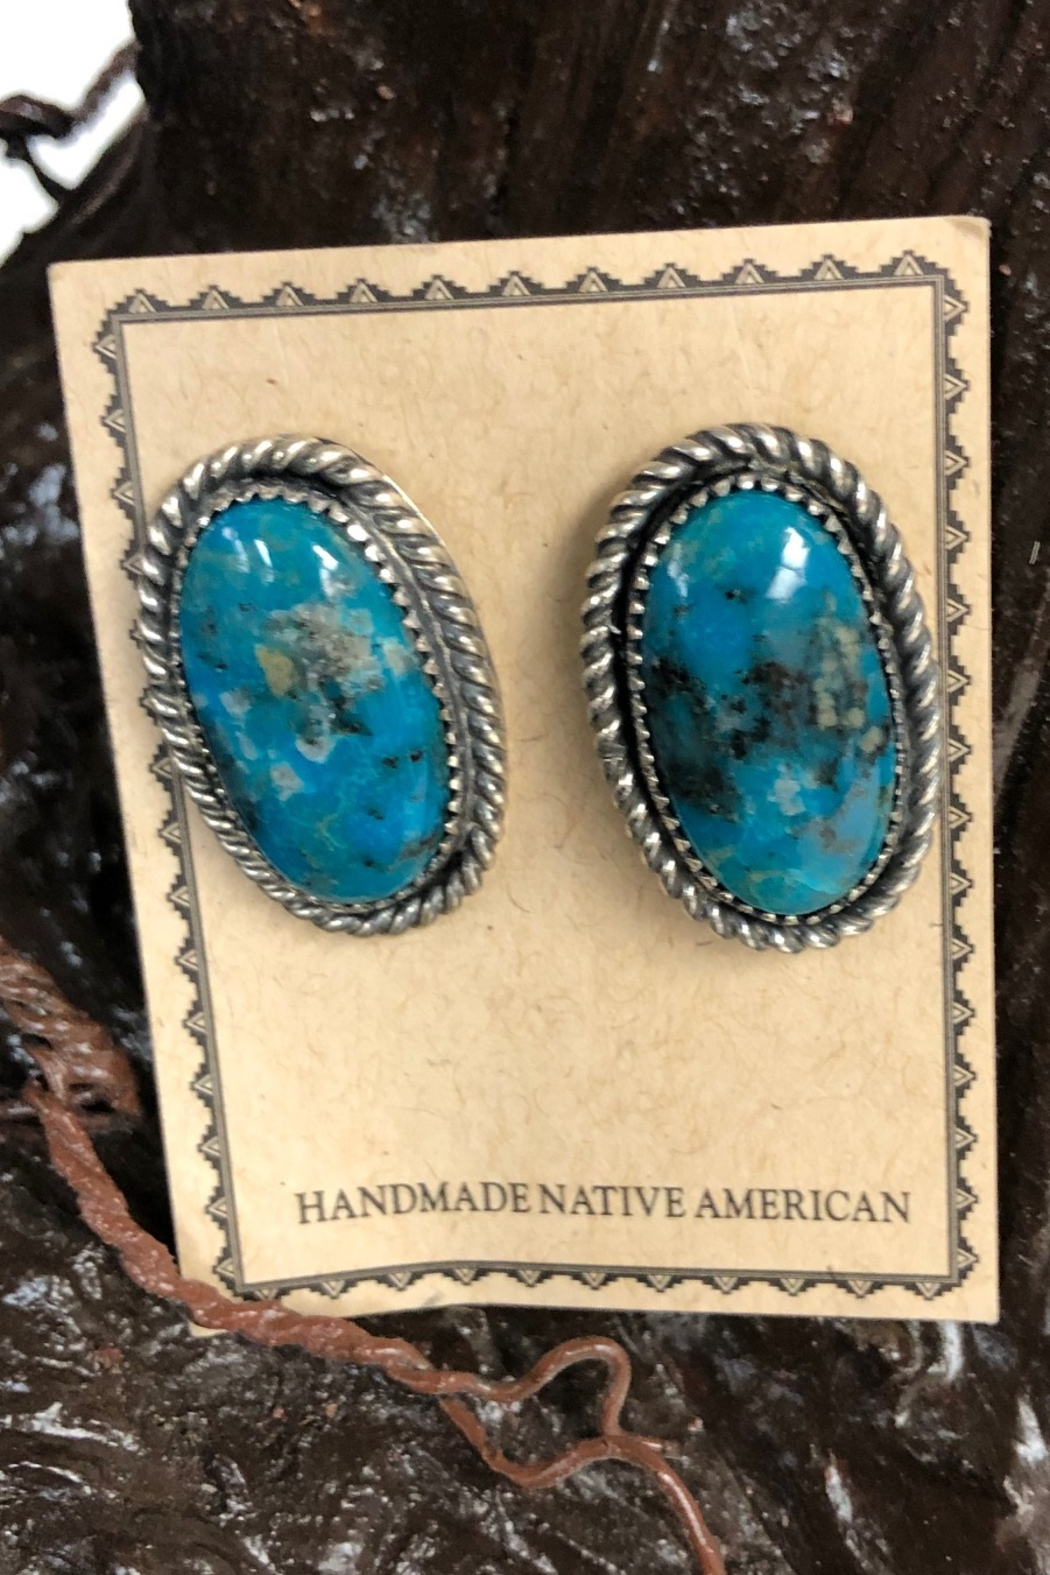 Shiprock Trading Post Native American Turquoise Earring - Main Image